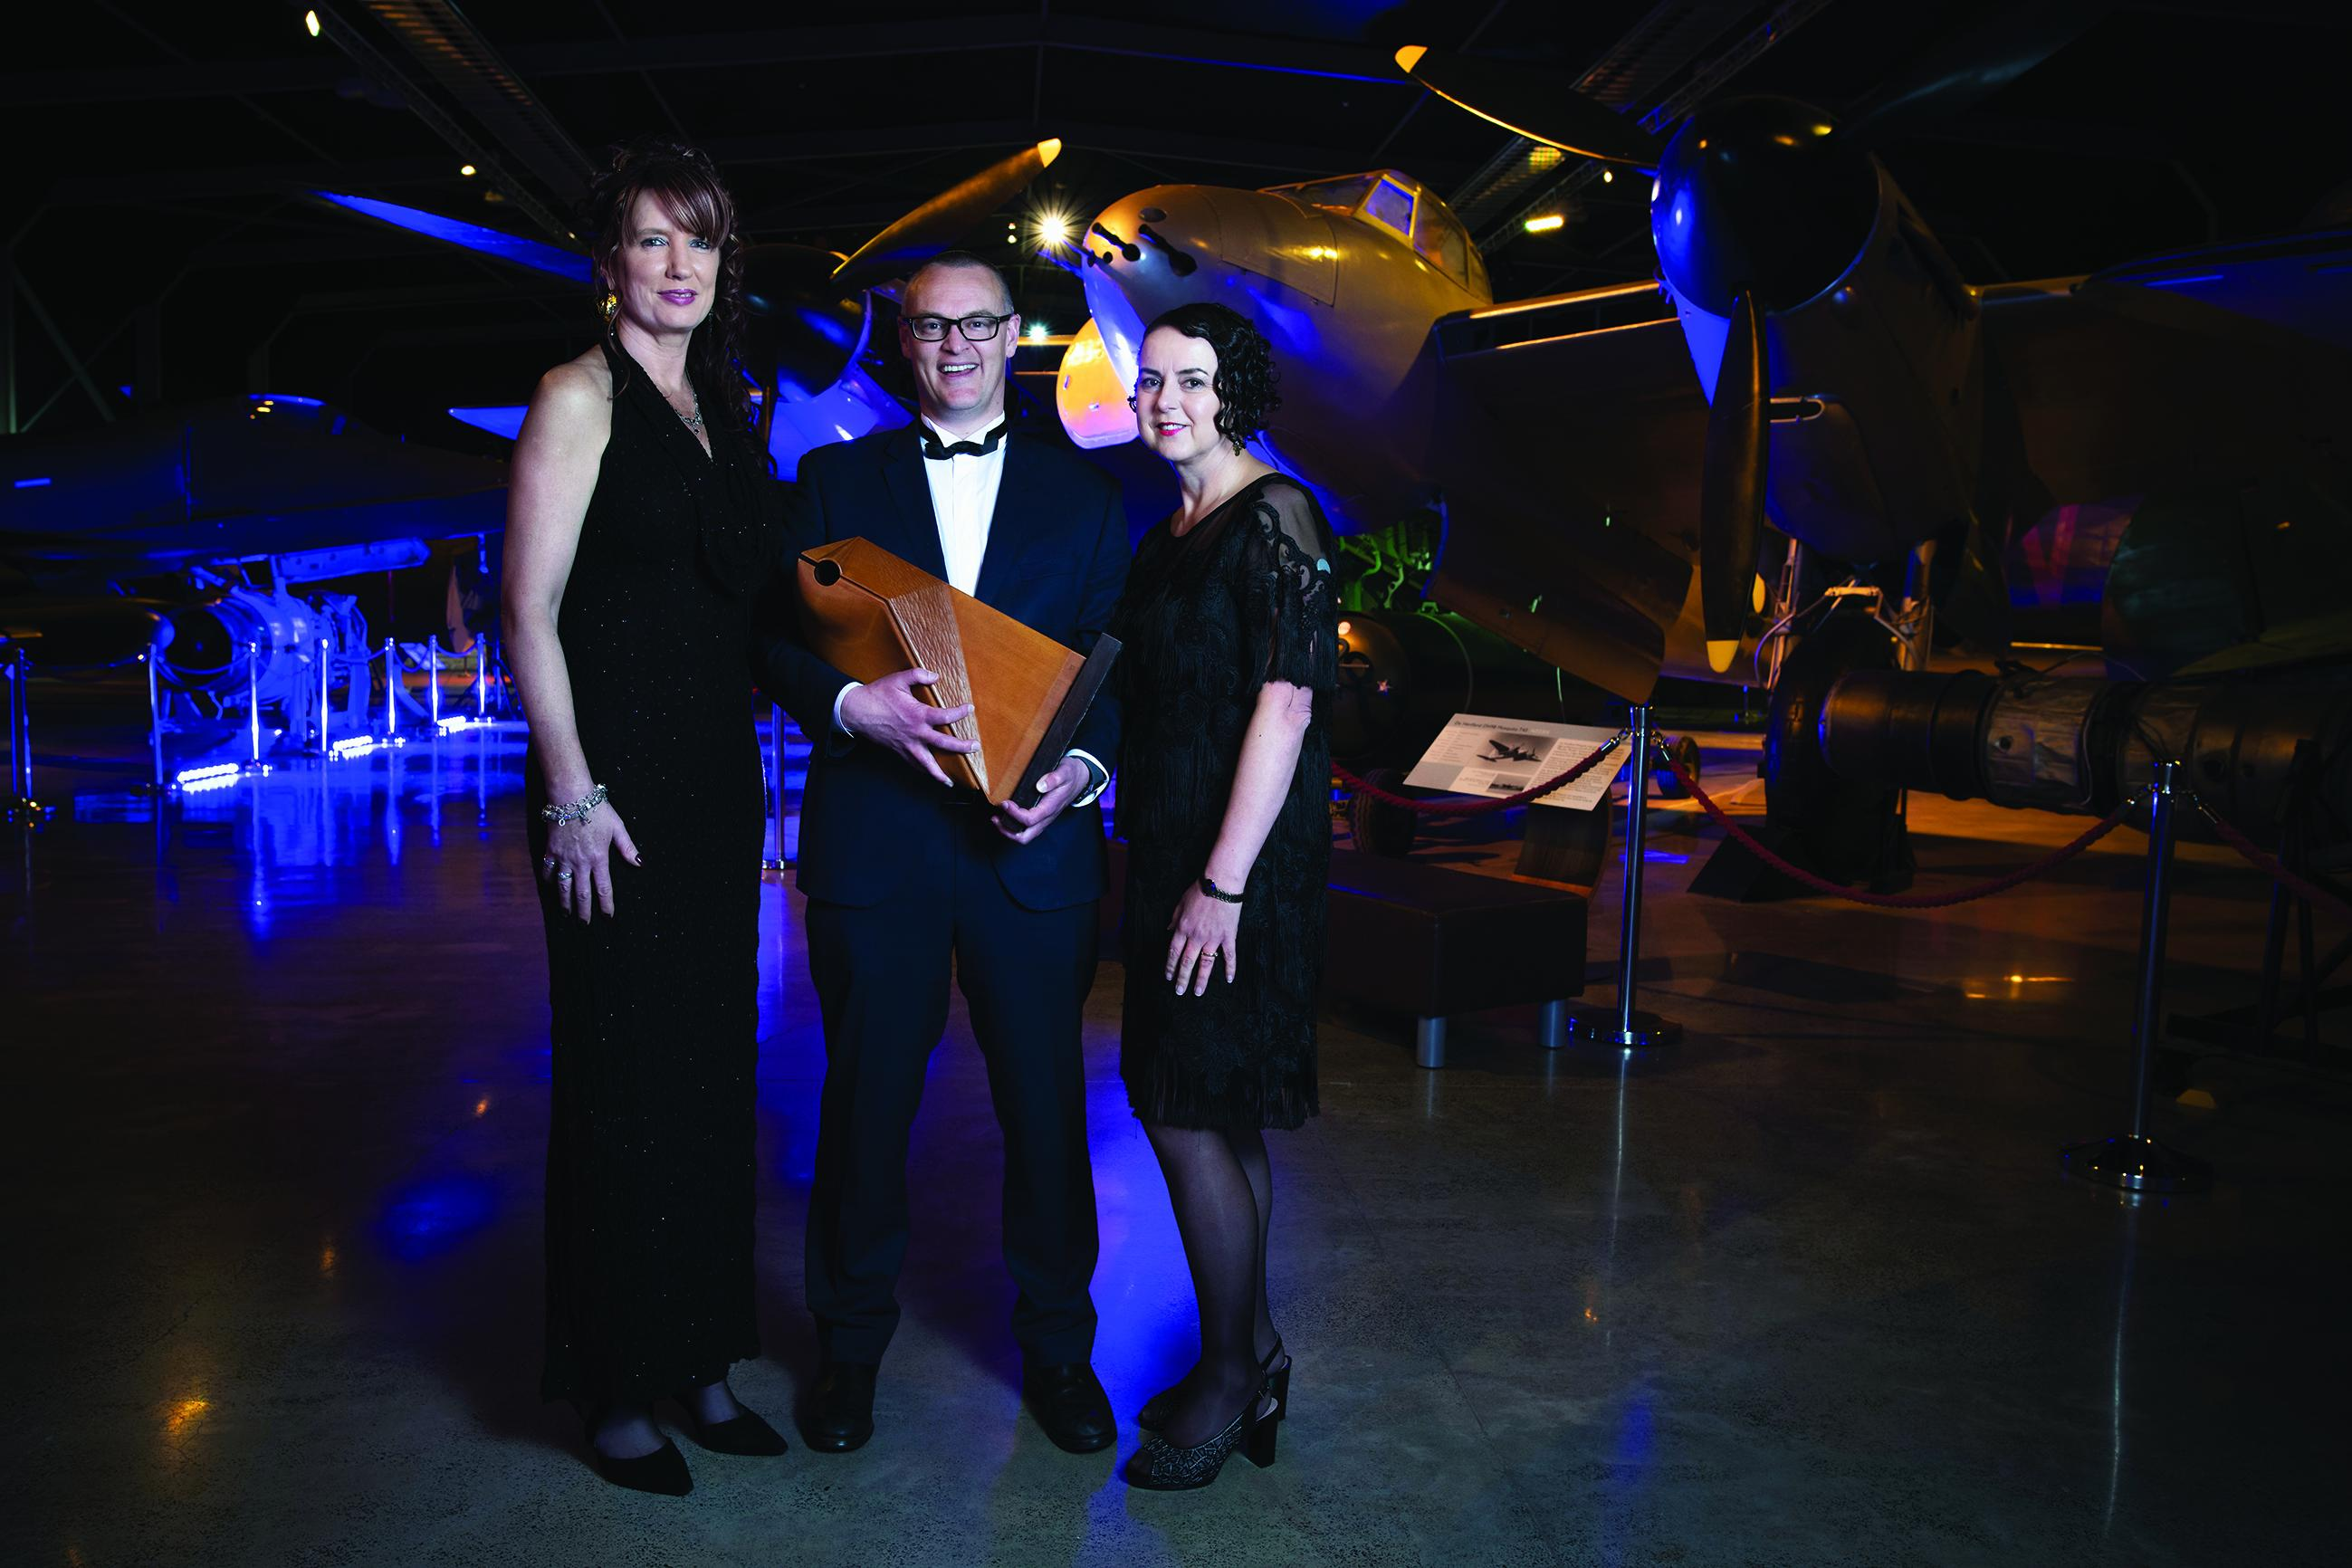 Alison Van Wyk, David Clark and Natalie Gauld at the Pharmacy Awards in 2018